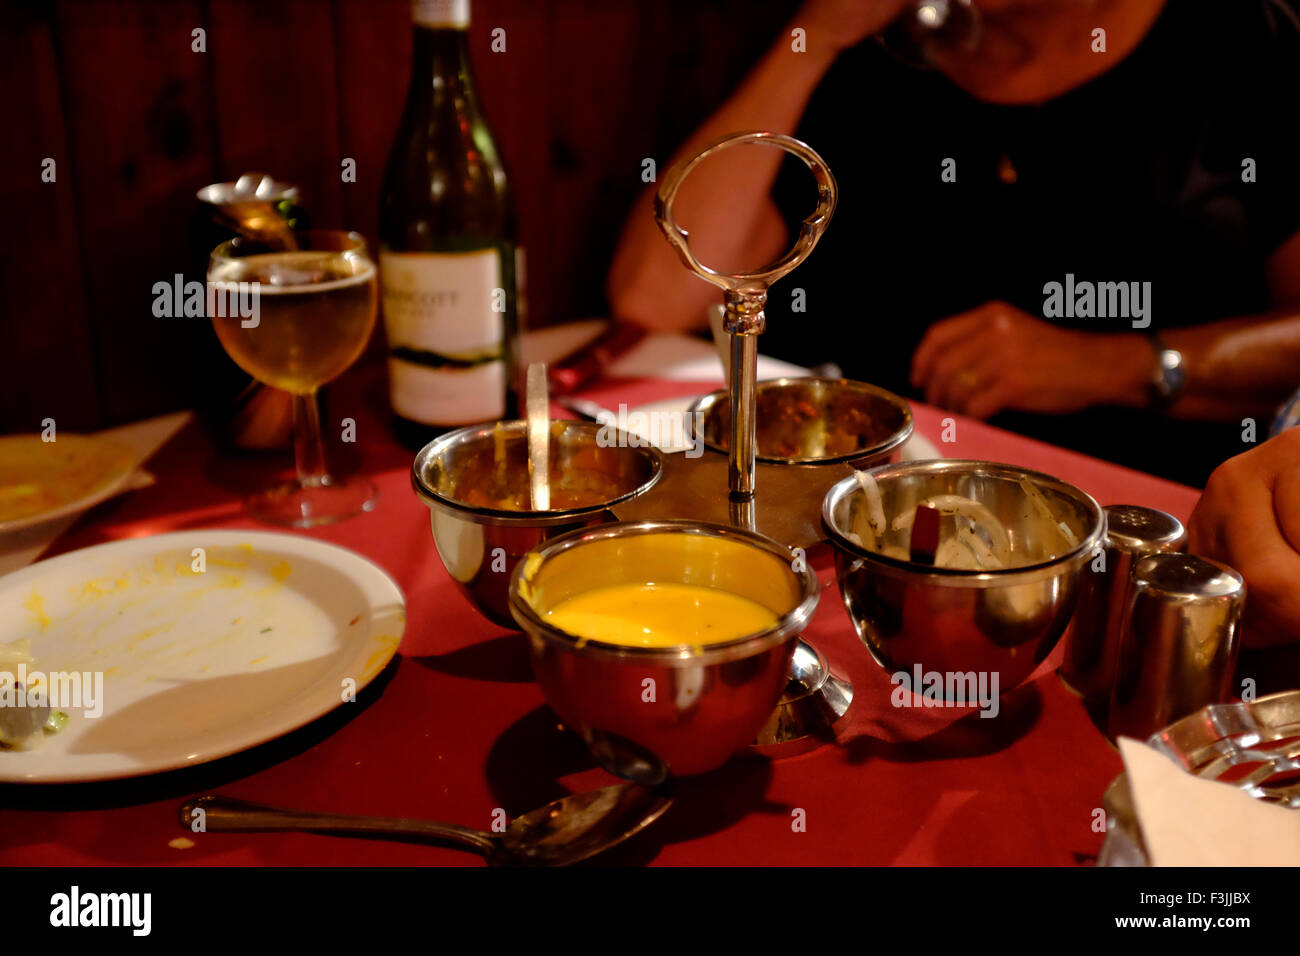 Indian meal starters poppadoms lime pickle onions larger glass plates end of the meal detritus table accutiments restaurant & Indian meal starters poppadoms lime pickle onions larger glass ...